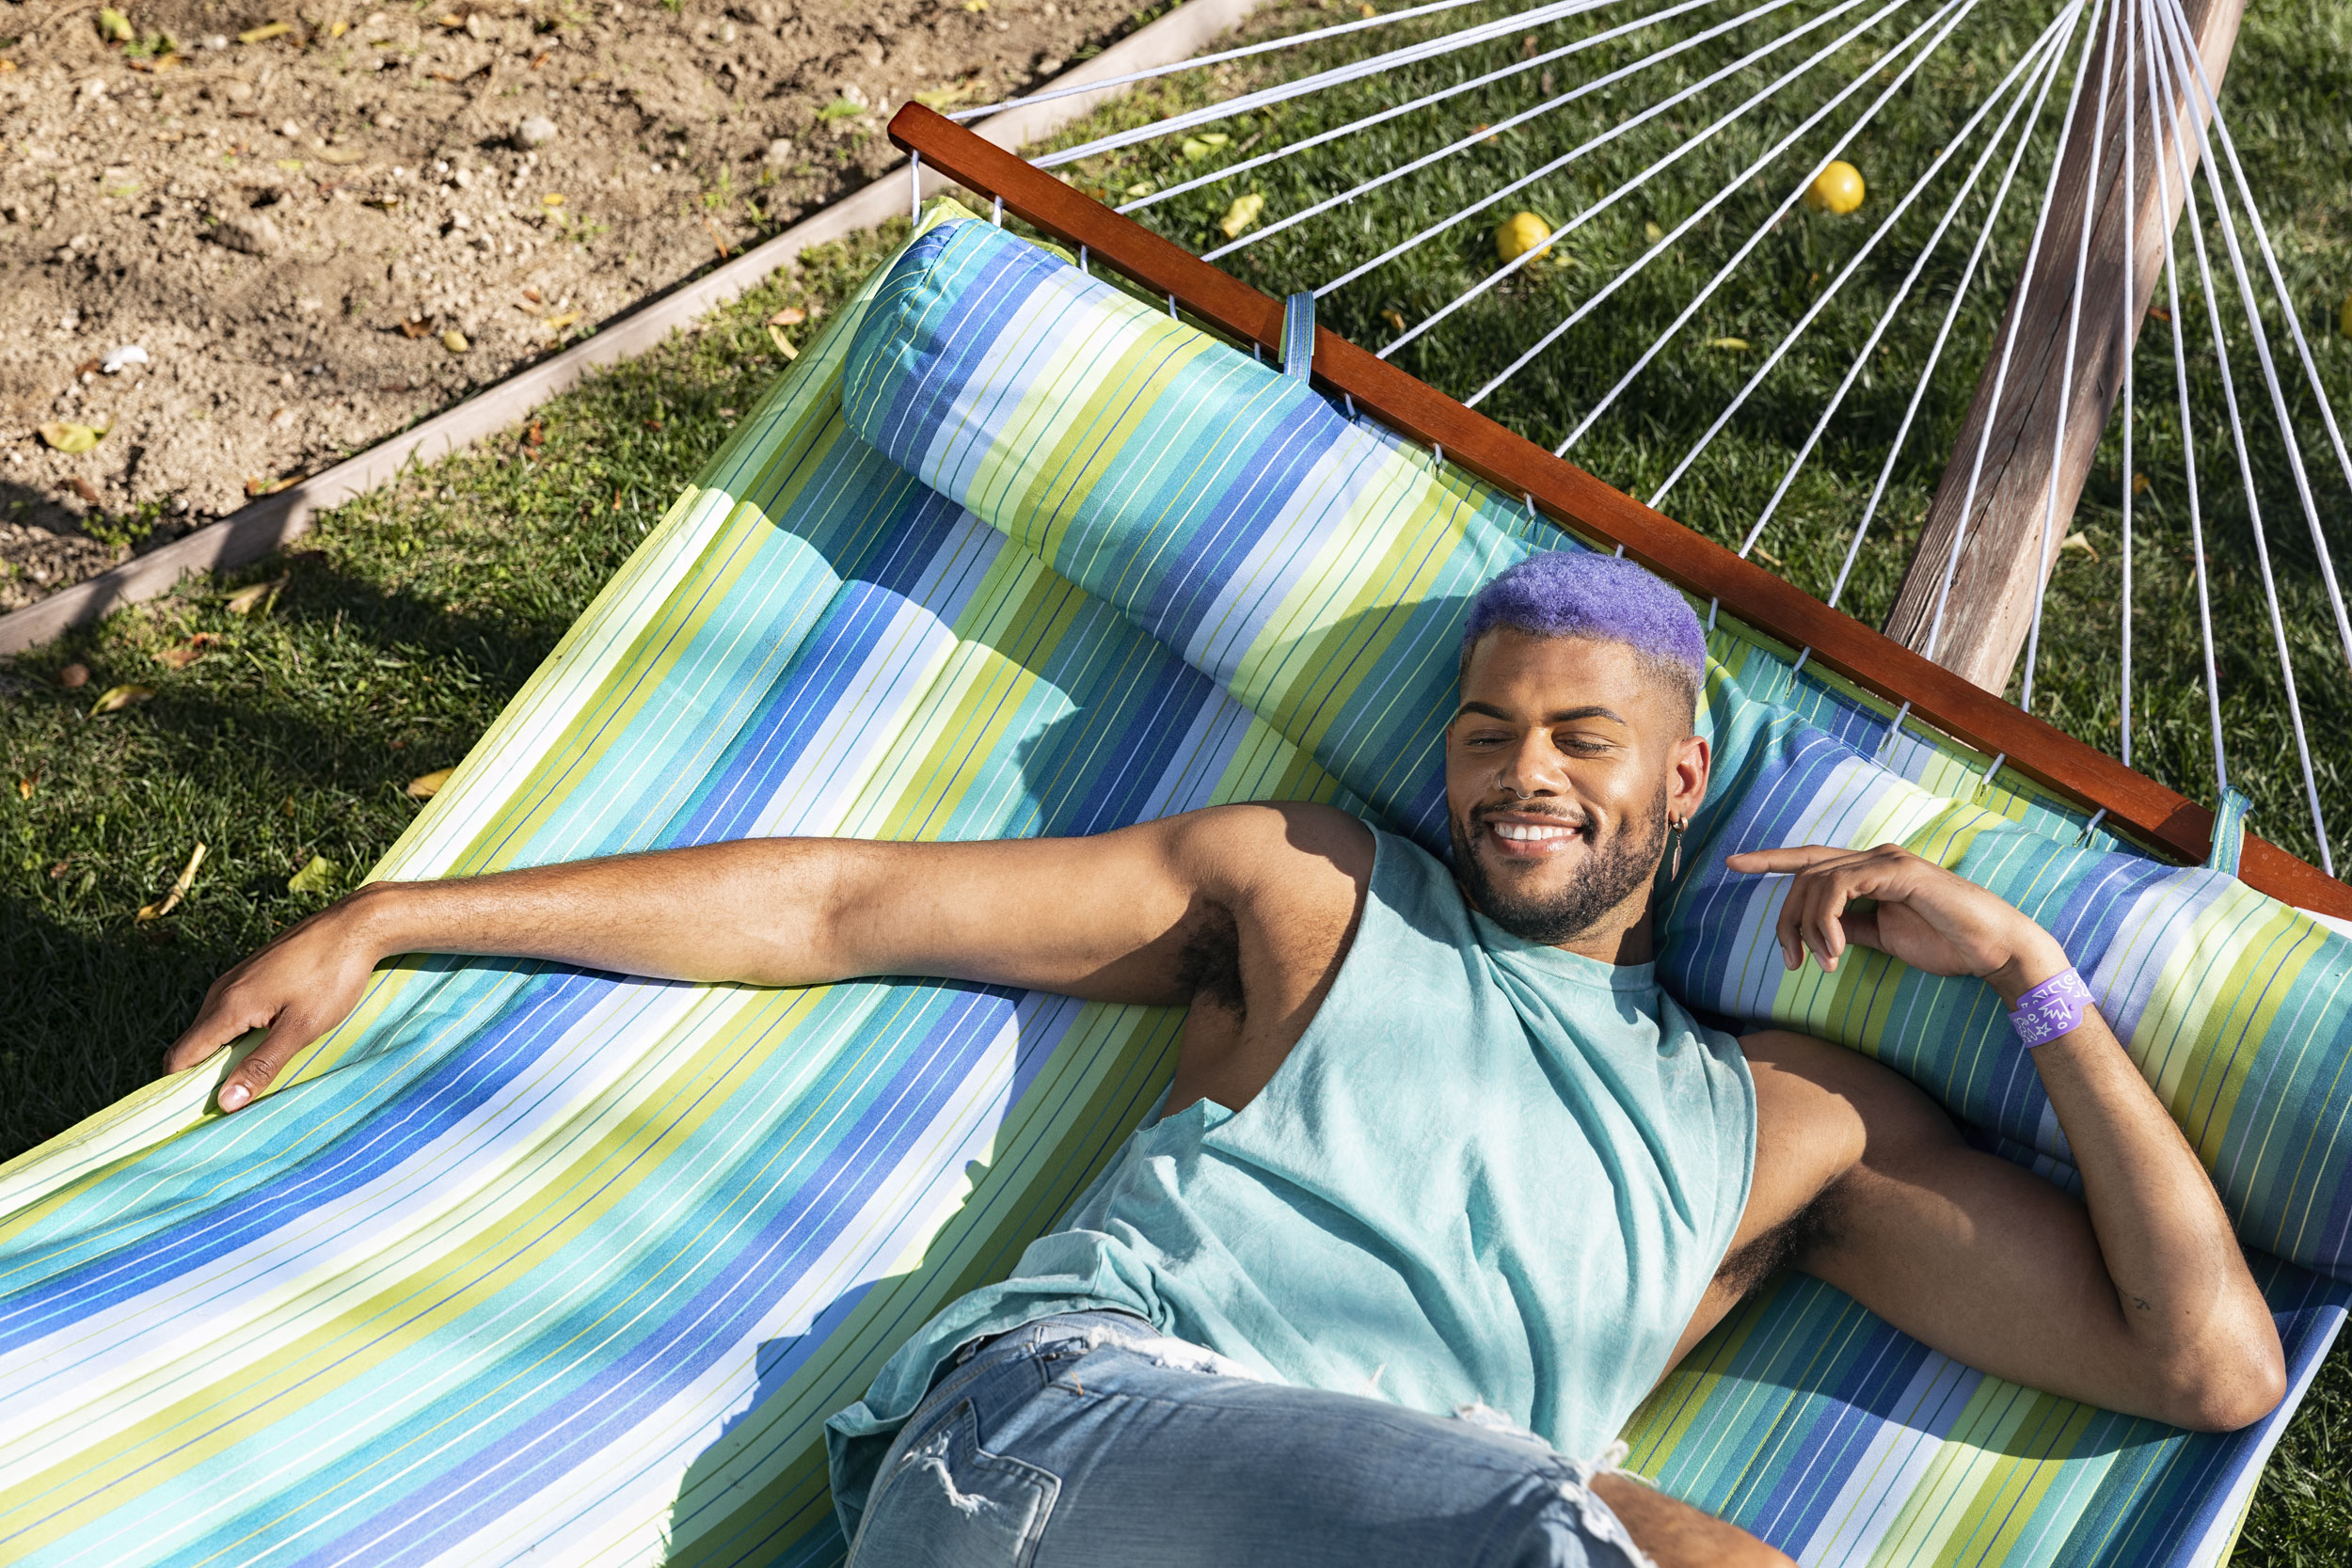 Guy with purple hair laying on a hammock smiling - Kim Genevieve Los Angeles Lifestyle Photographer